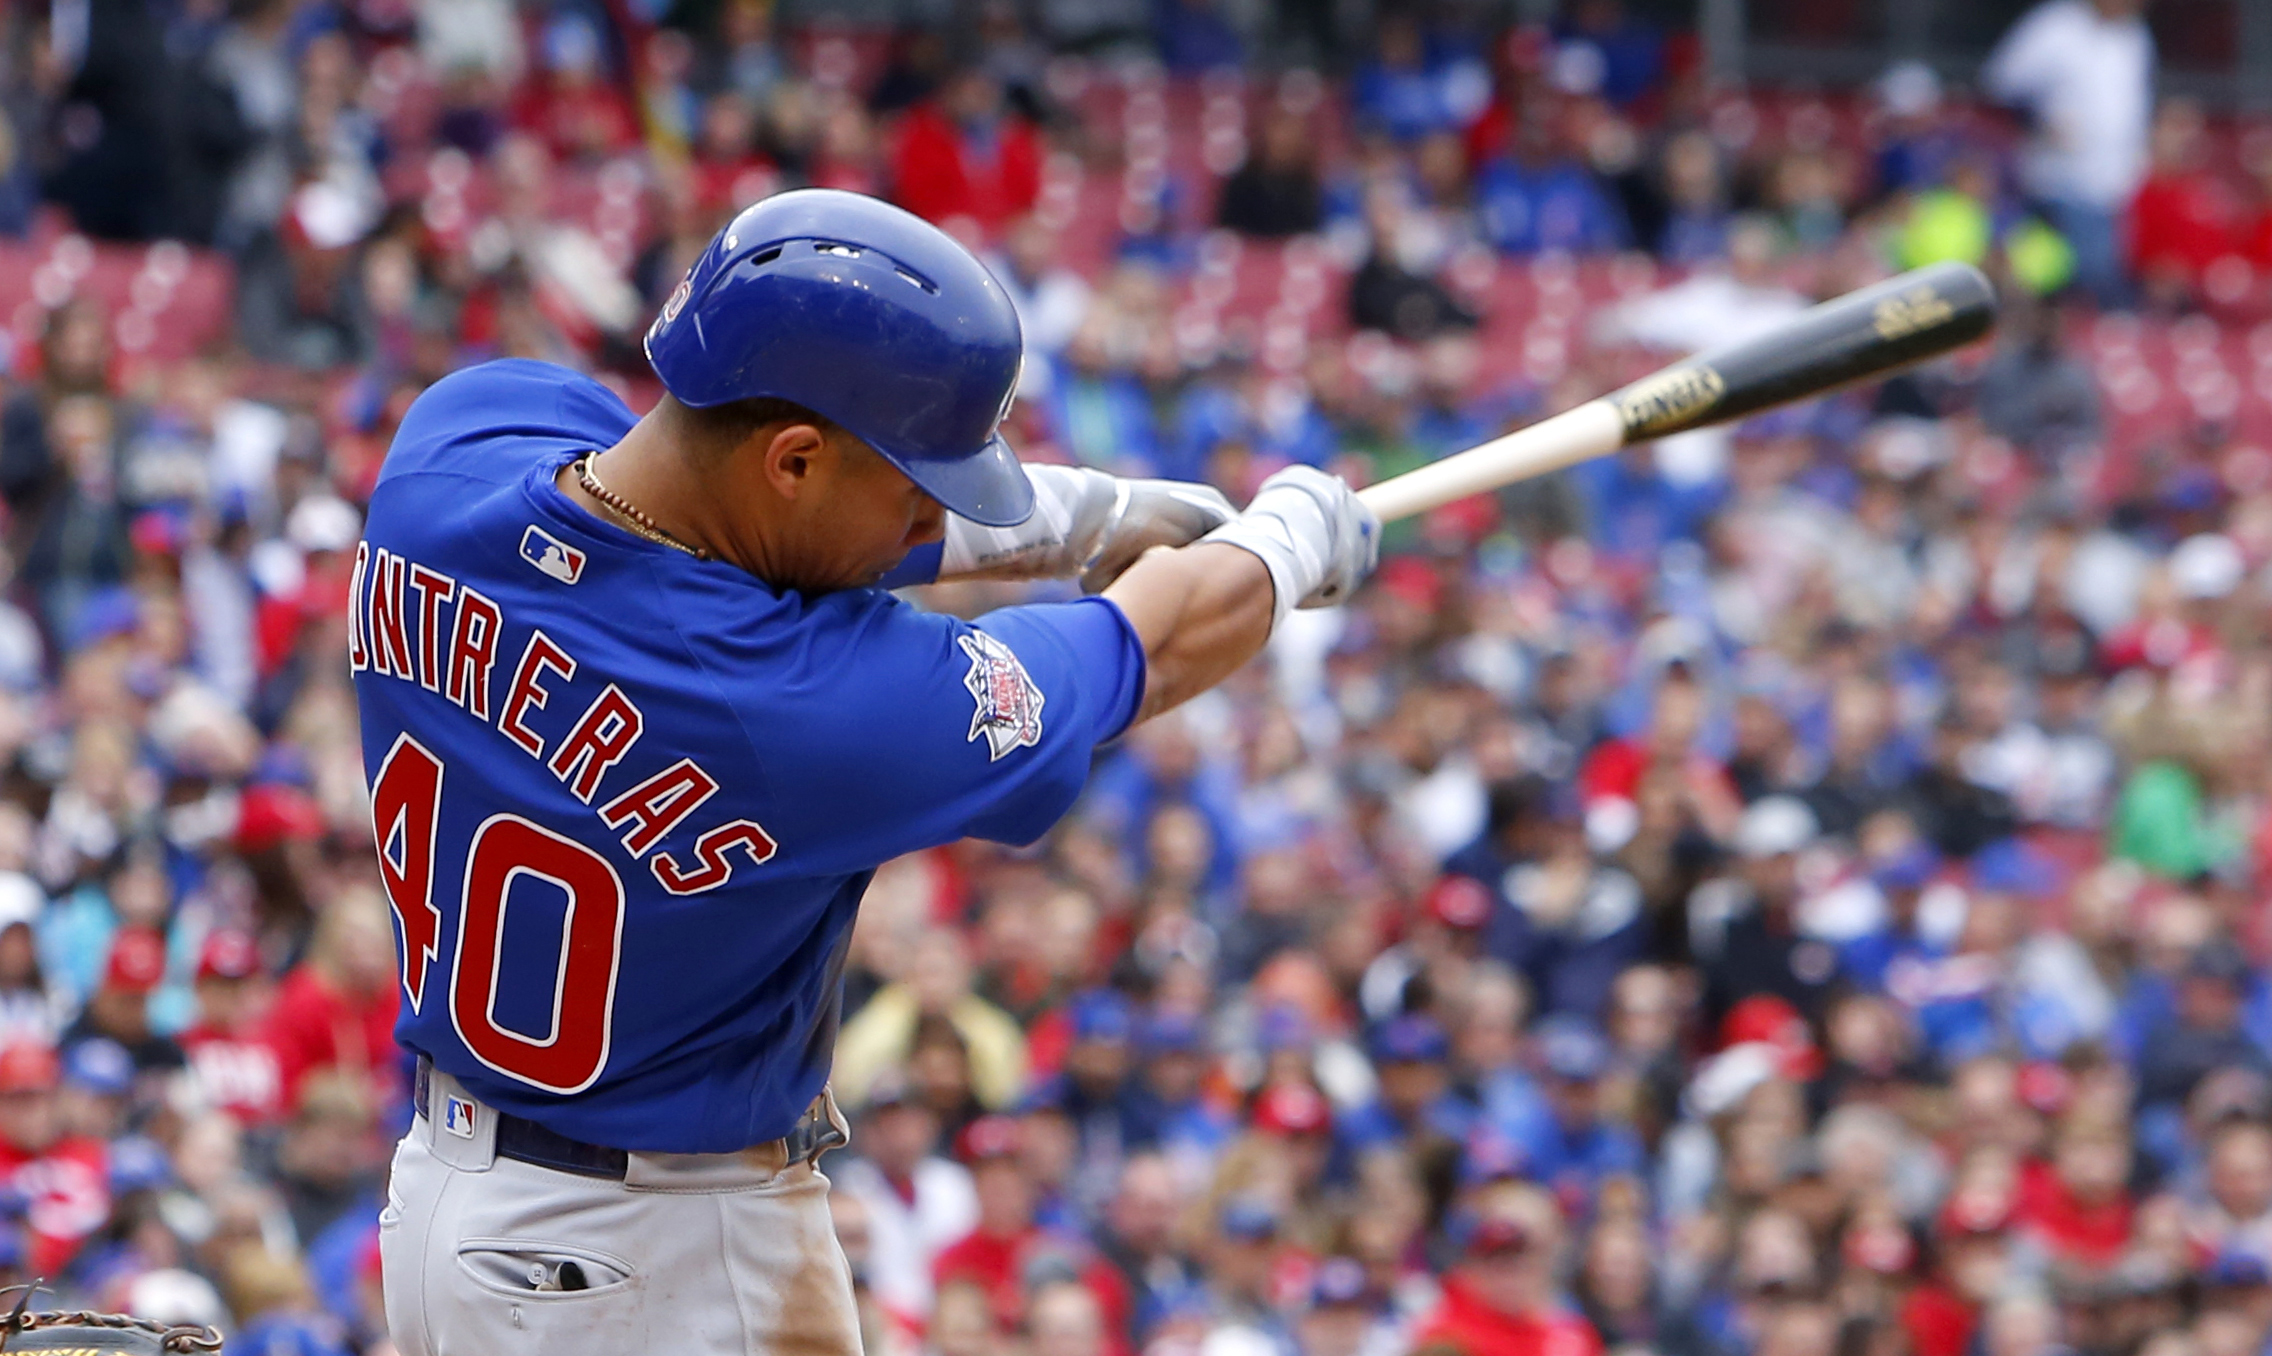 Chicago Cubs: Willson Contreras grand slam leads offense ...